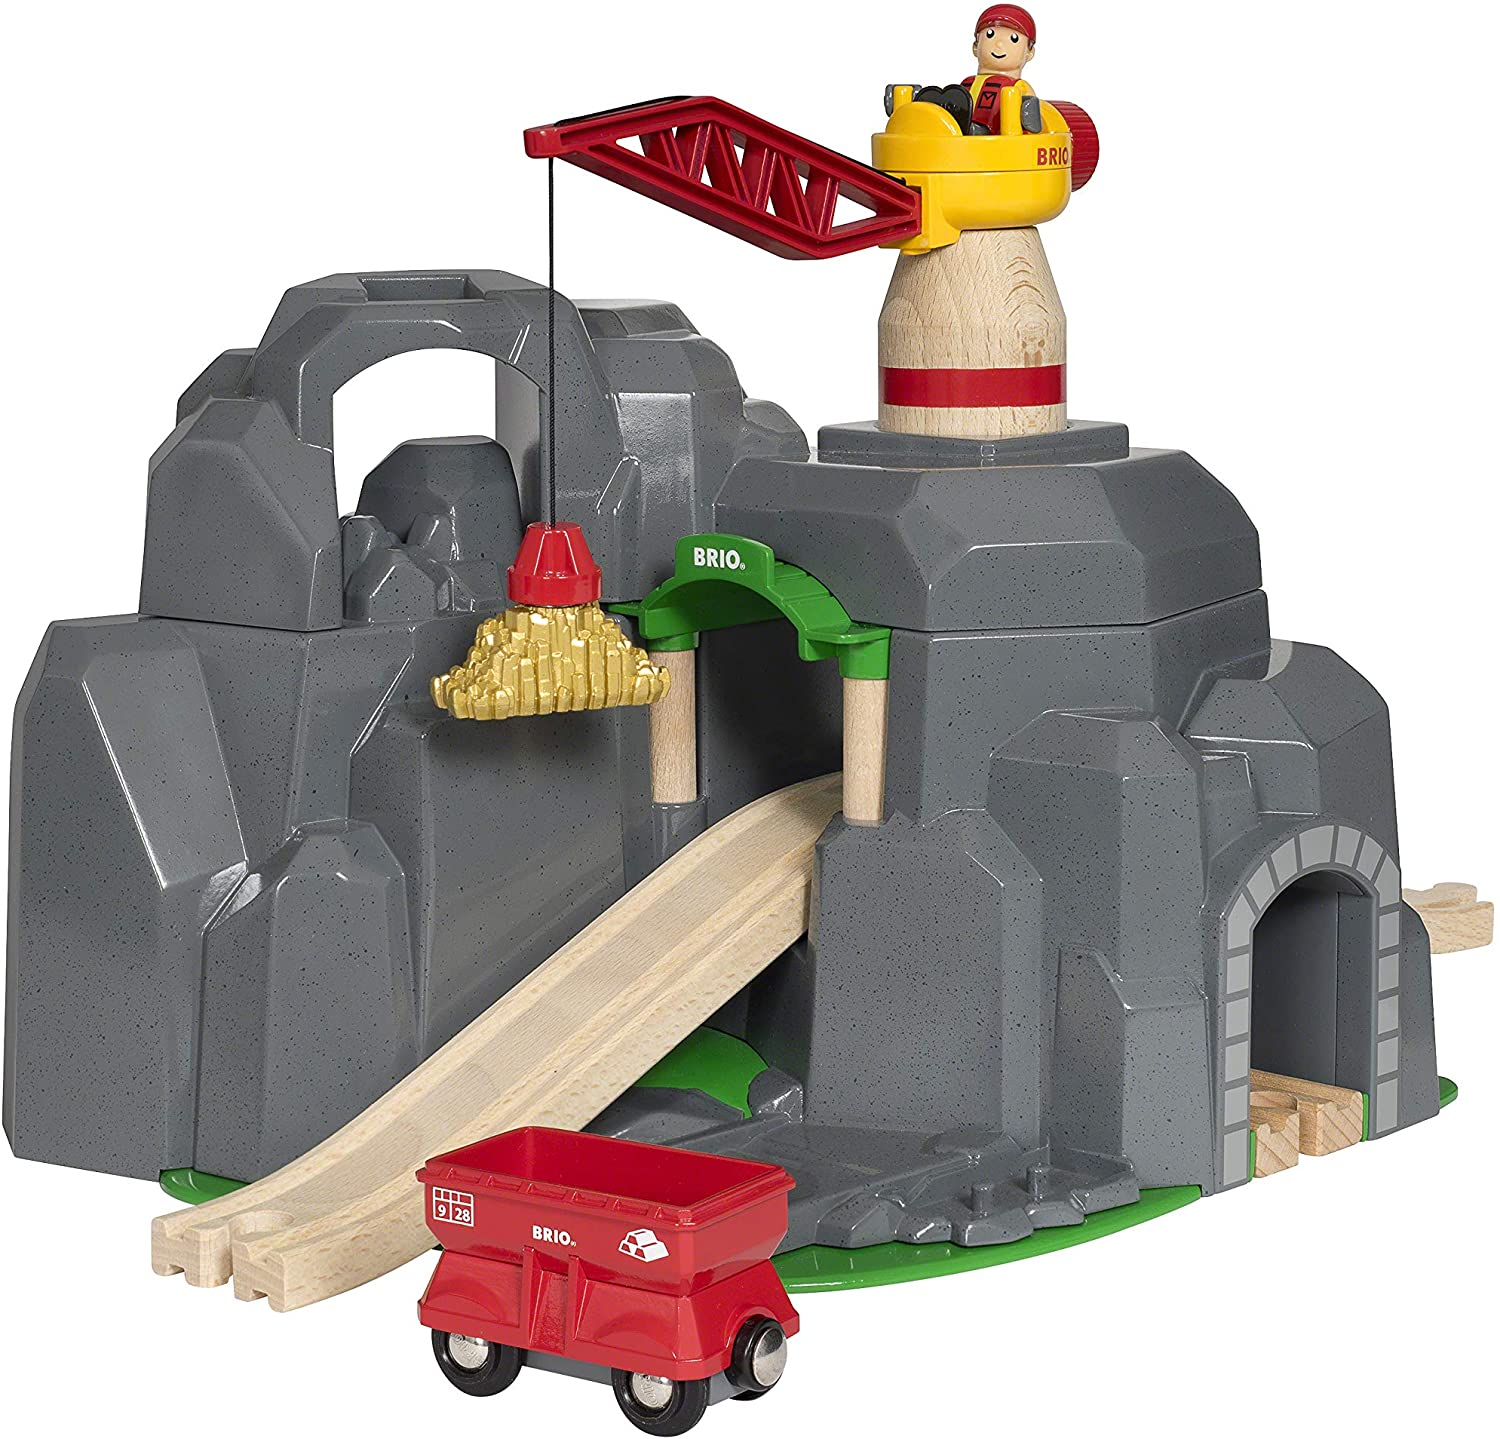 Brio World - 33889 Crane & Mountain Tunnel | 7 Piece Toy Train Accessory for Kids Ages 3 and Up